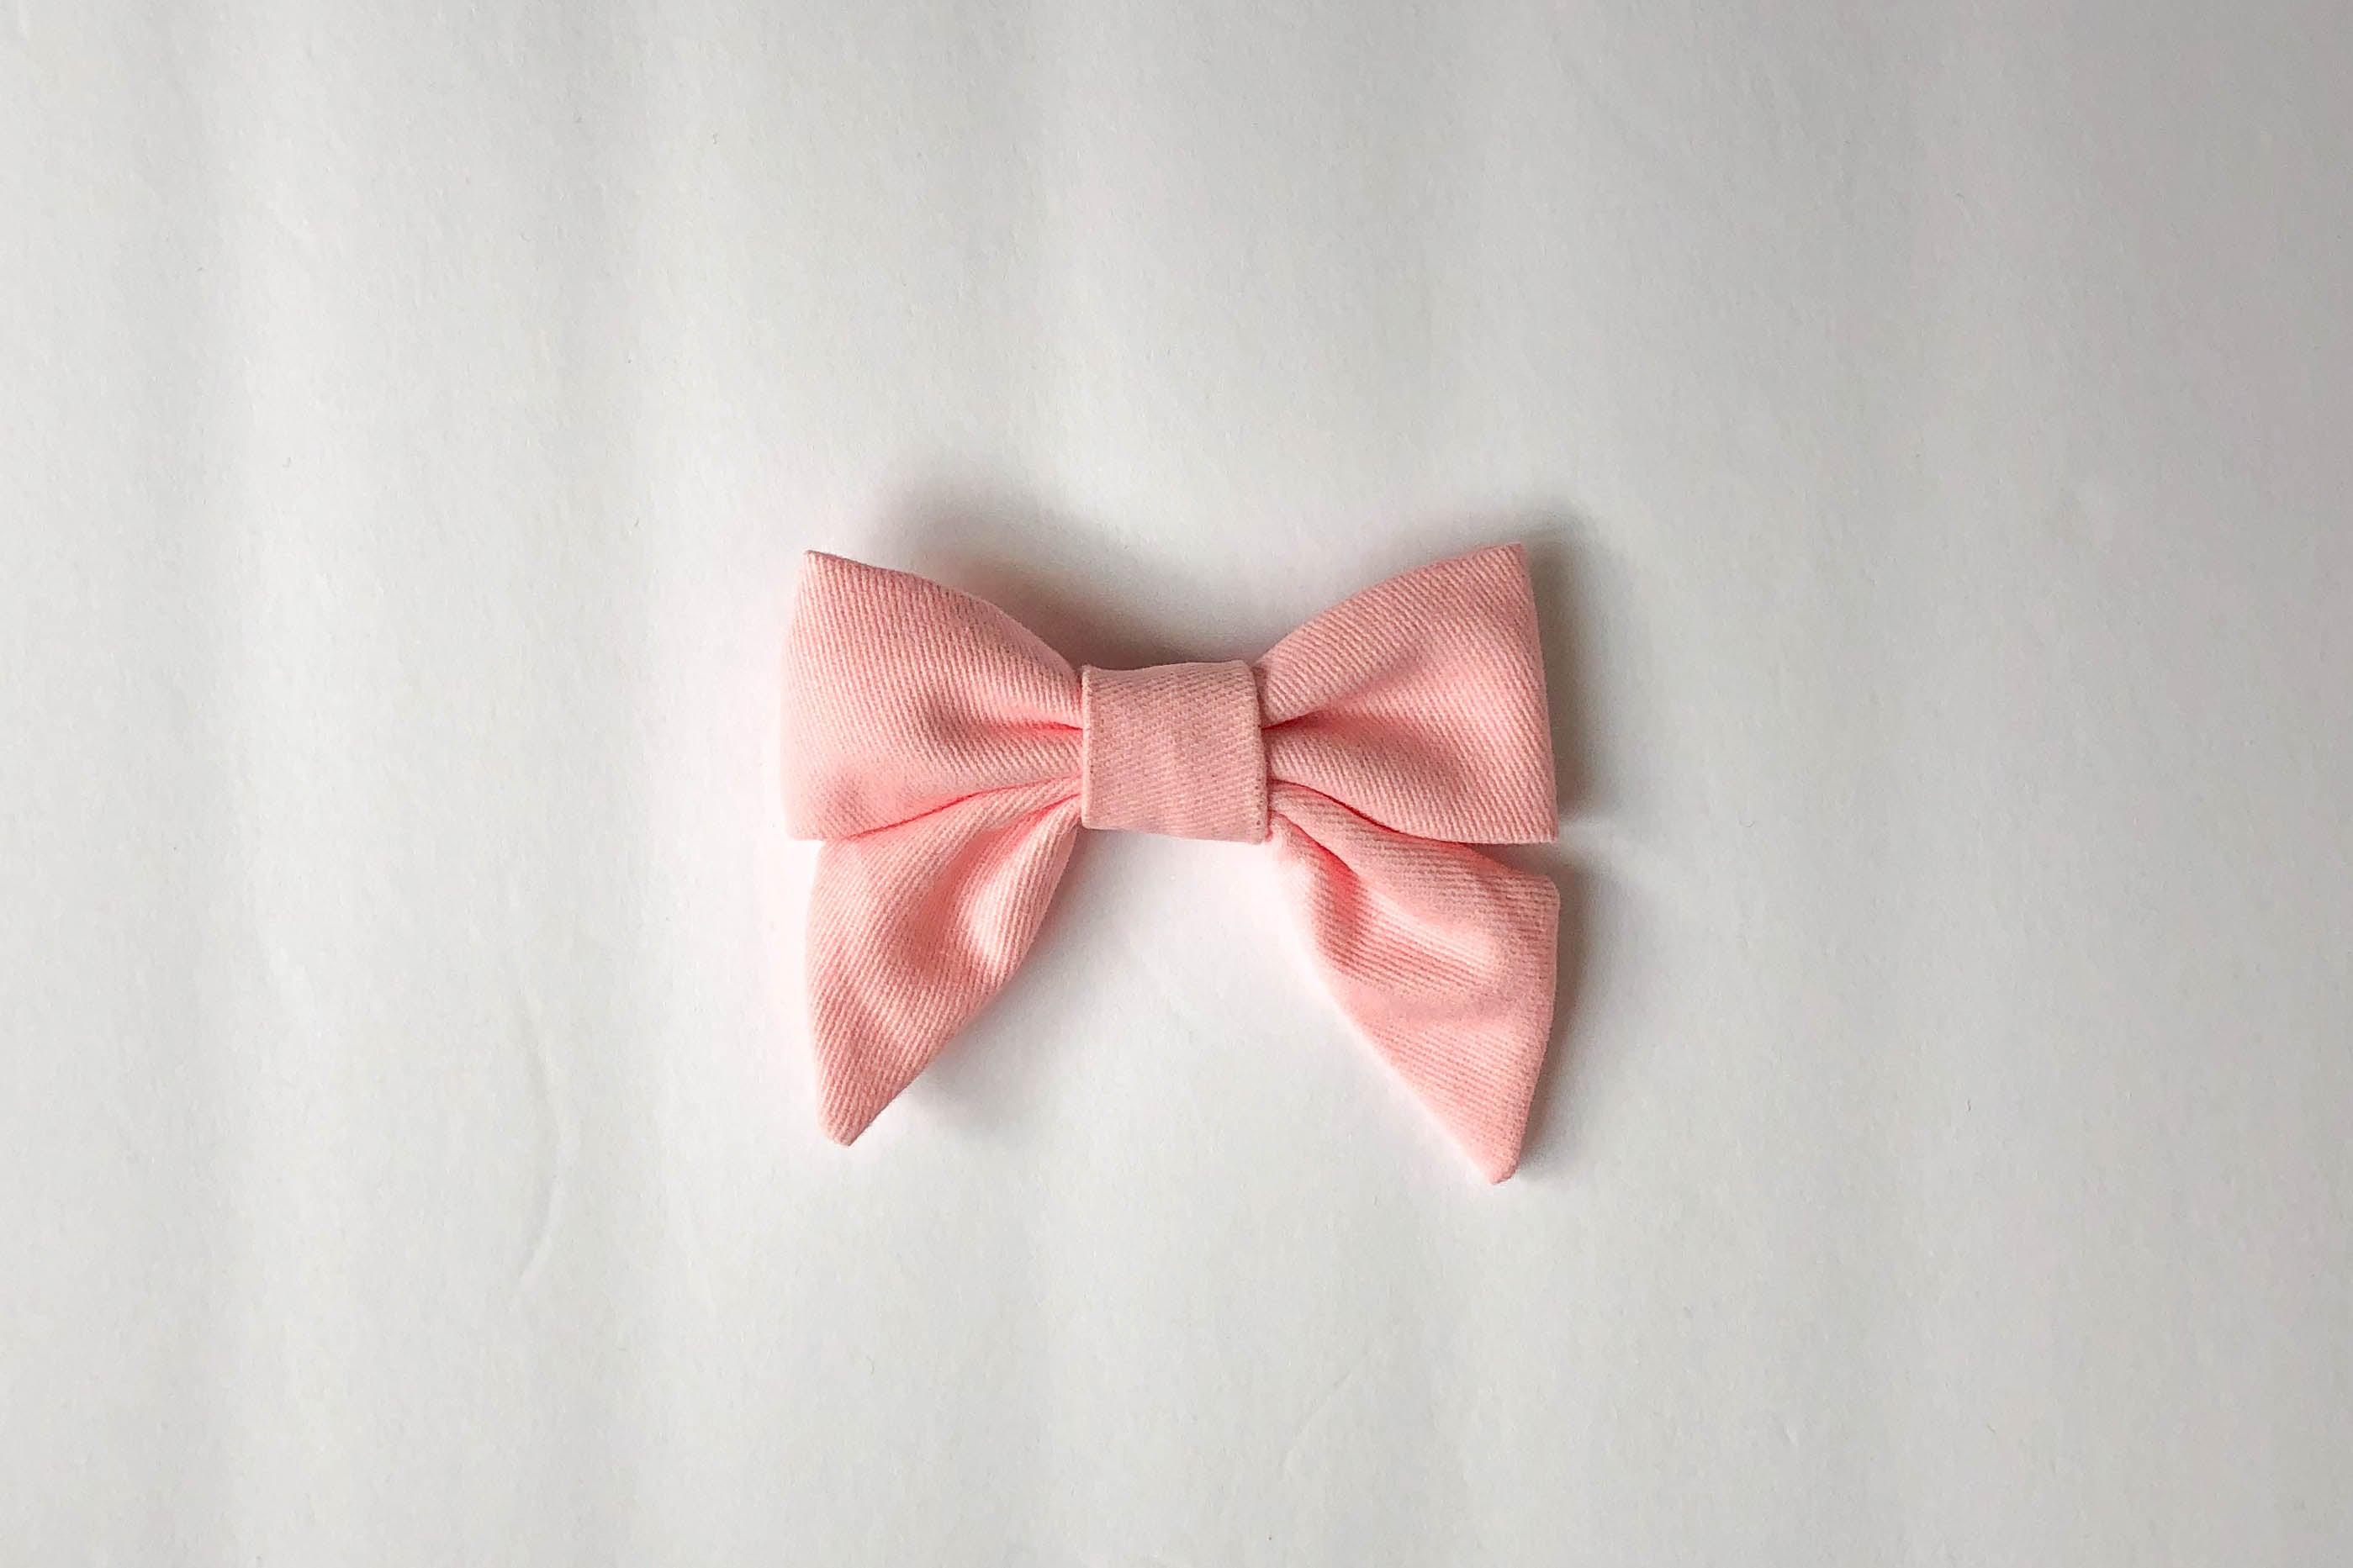 Pink baby hair bow, chunky sailor bow, matching tie and baby hair bow, toddler pink hair bow, alligator clip